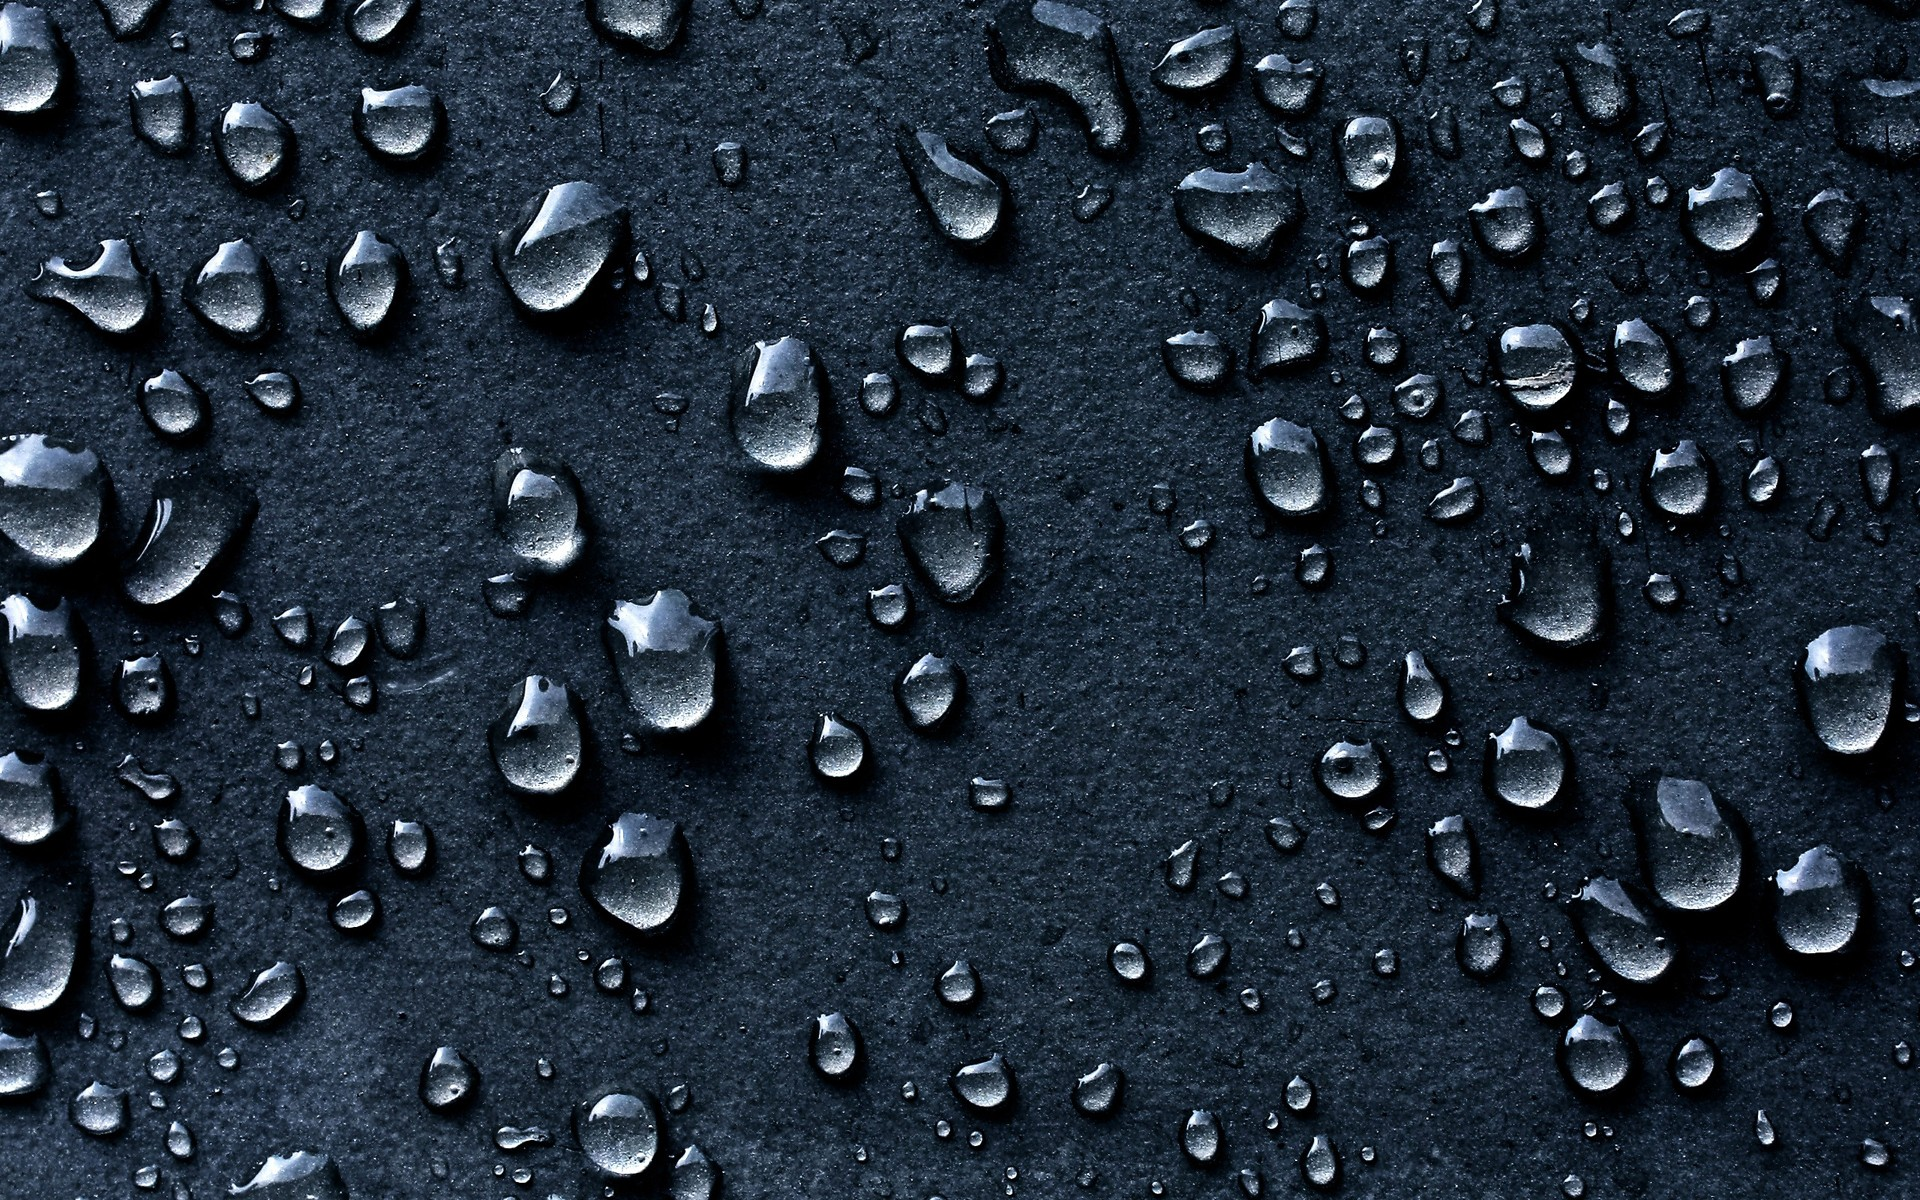 hd wallpapers water drops - photo #31